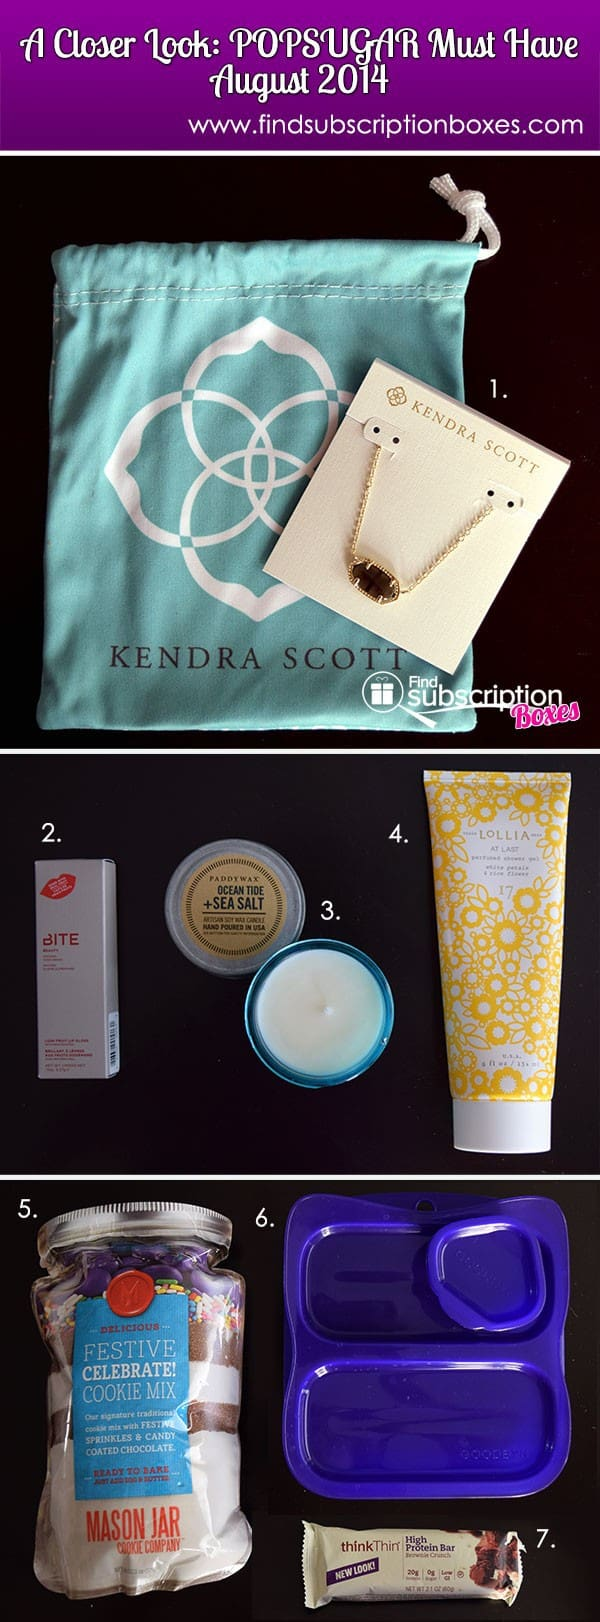 August 2014 POPSUGAR Must Have Box - Inside the Box